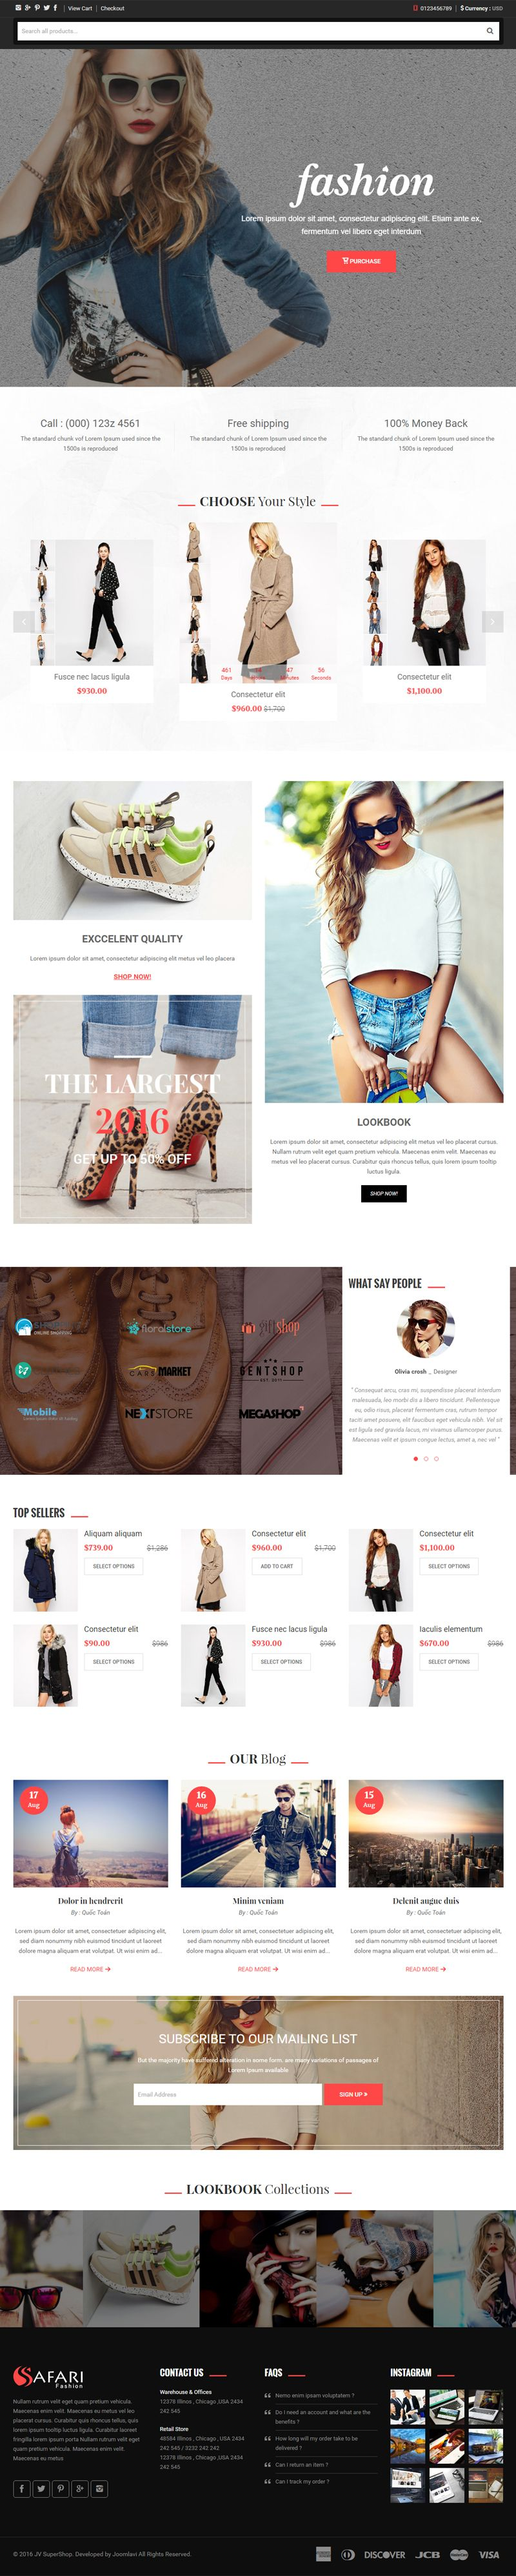 Safari - Responsive Multipurpose Shopify Theme Screenshot 3